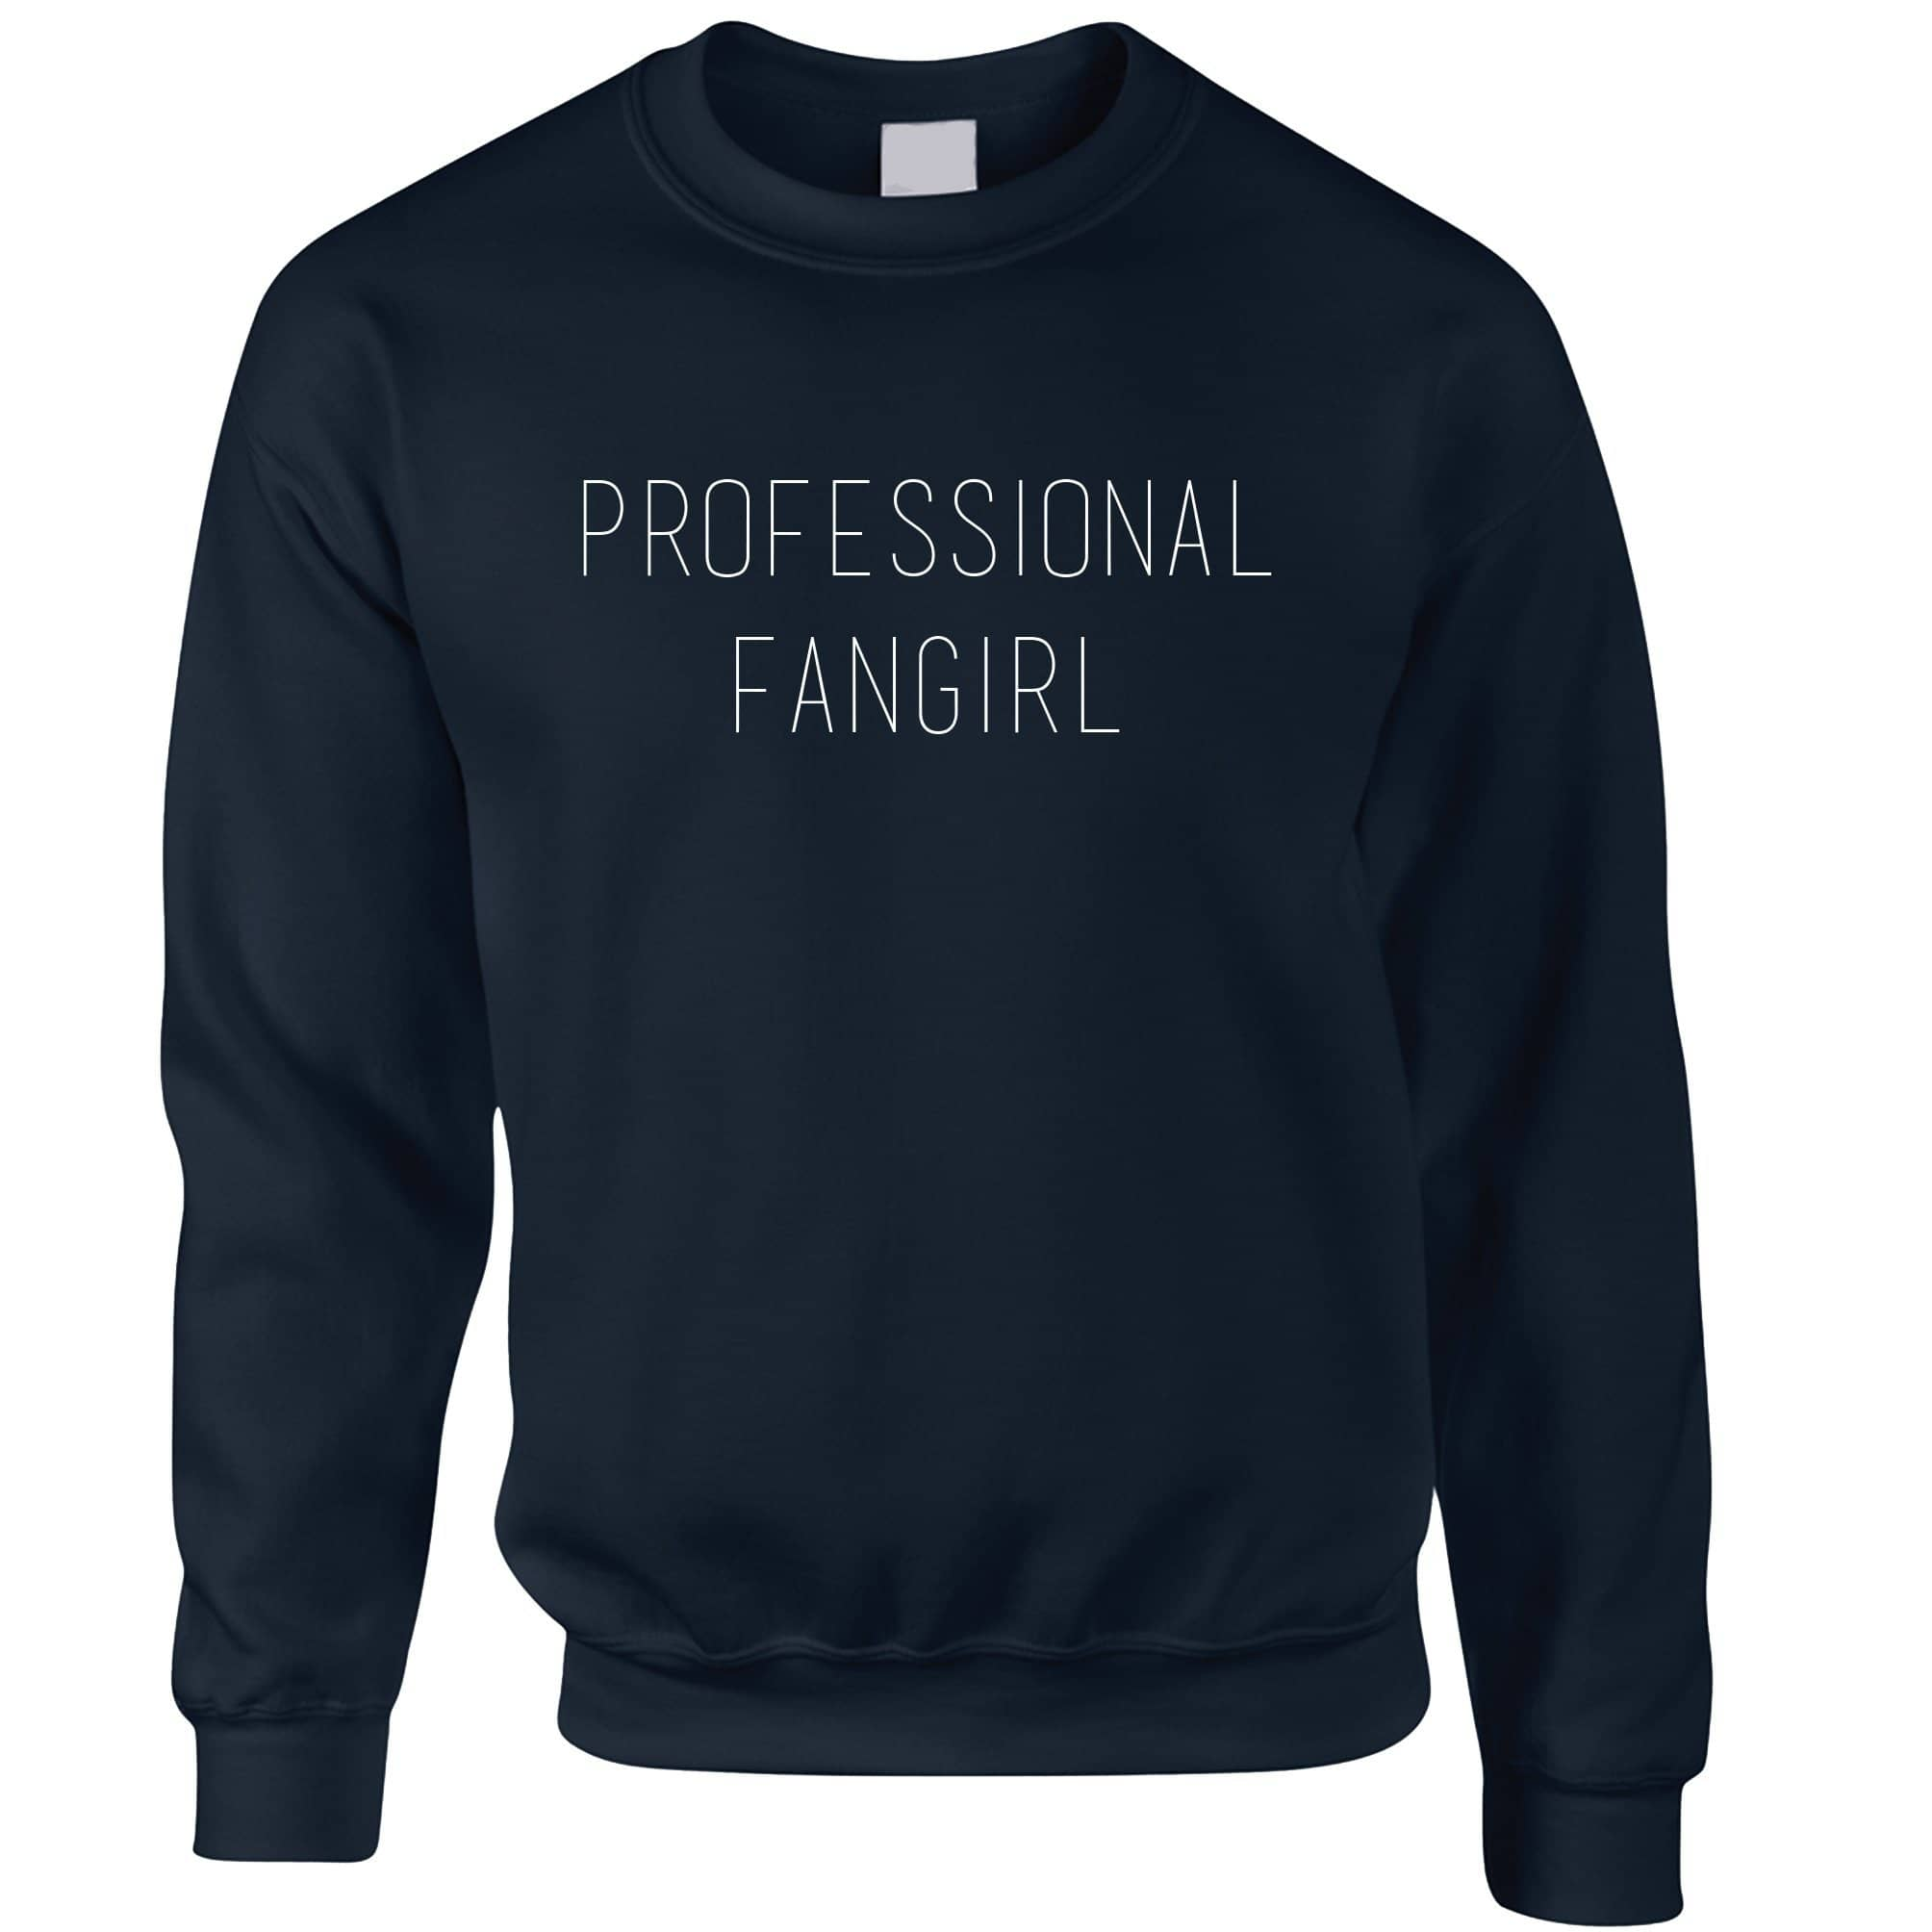 Novelty Joke Slogan Jumper Professional Fangirl Sweatshirt Sweater